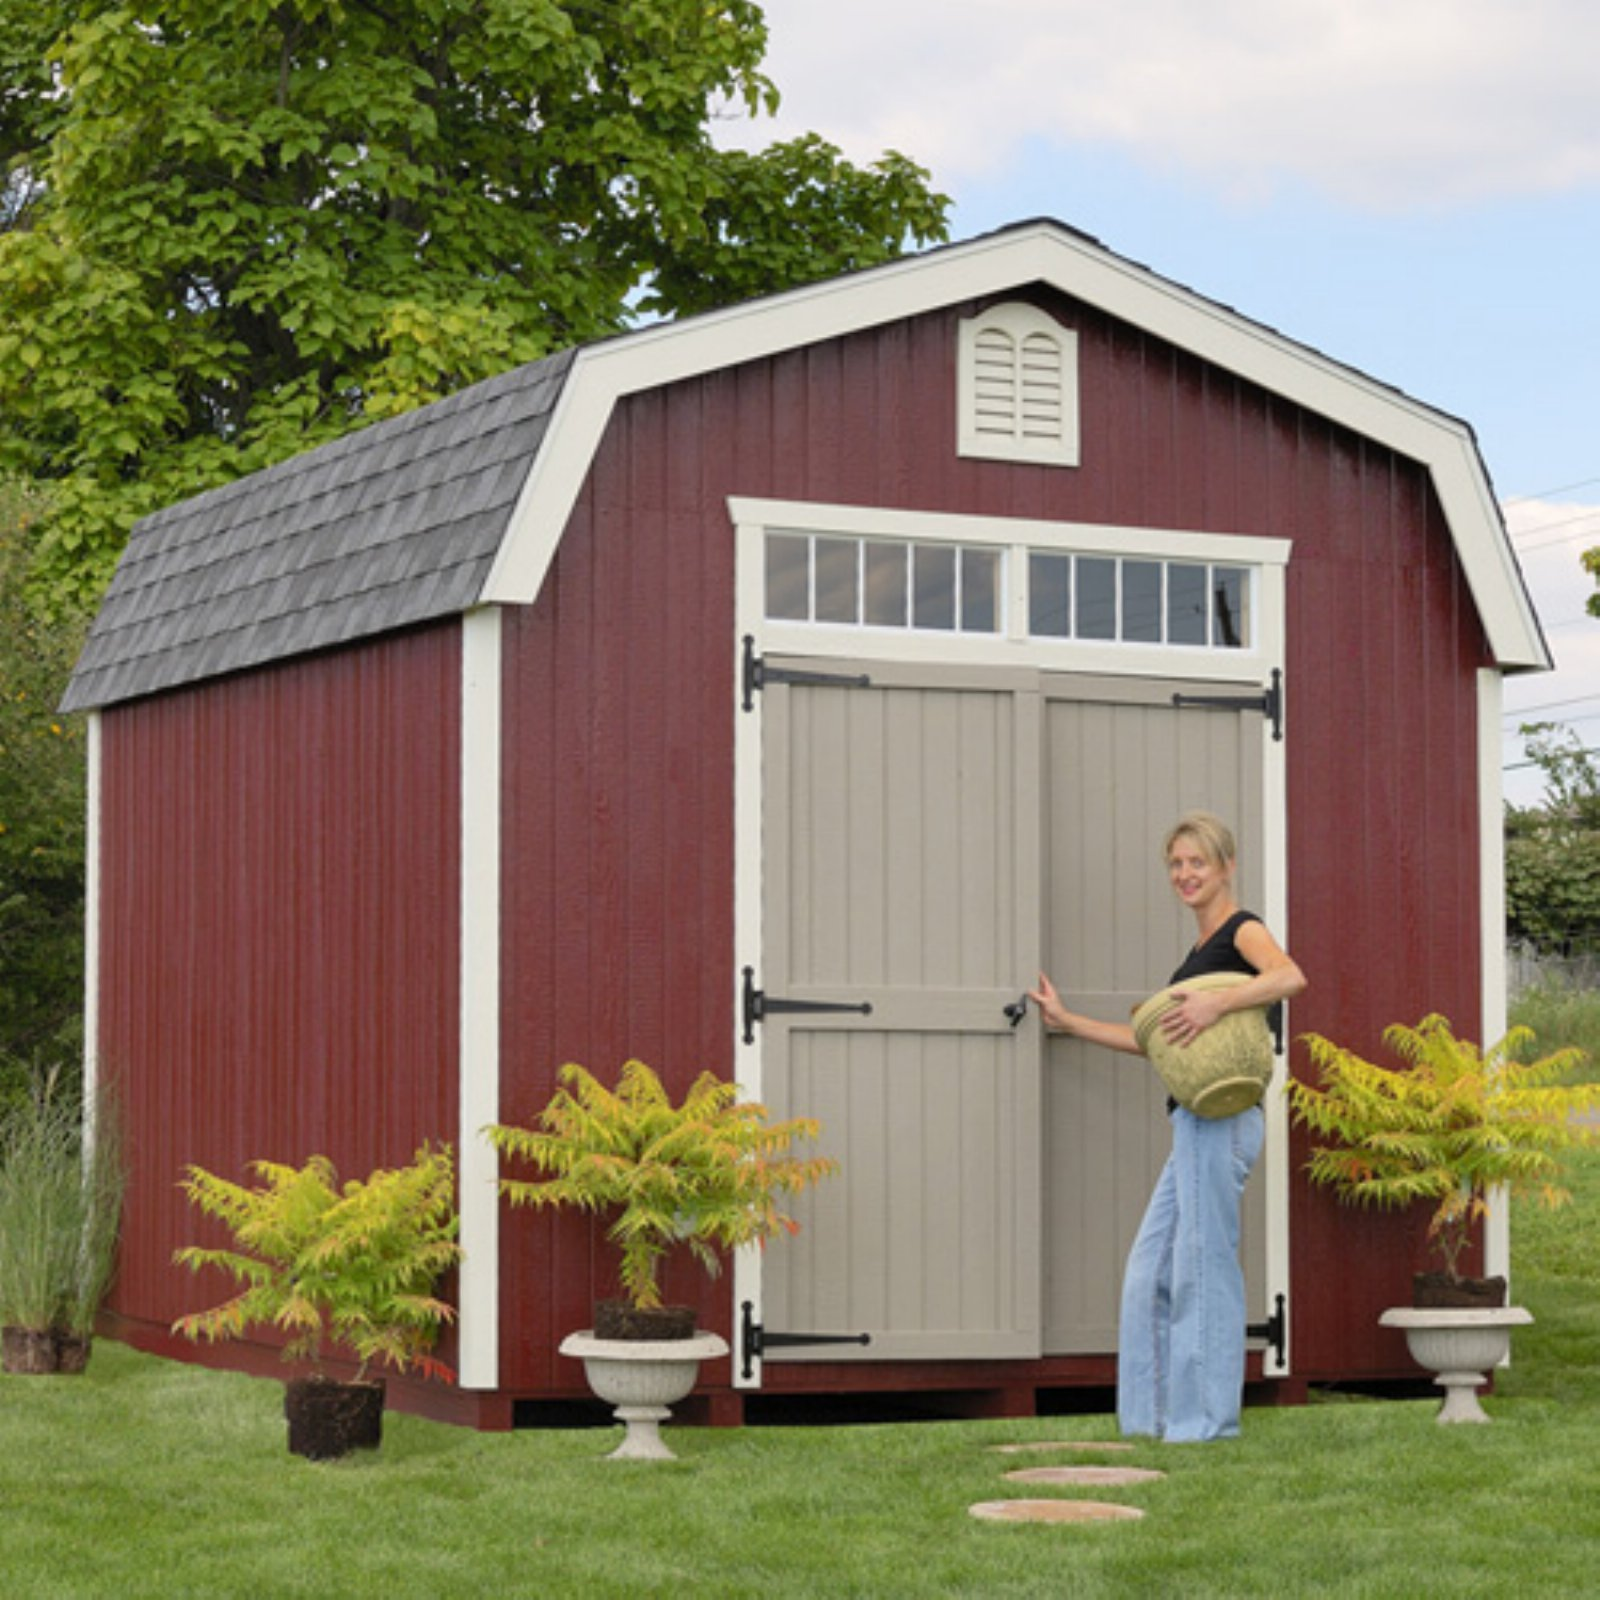 Woodbury Colonial Panelized Storage Shed